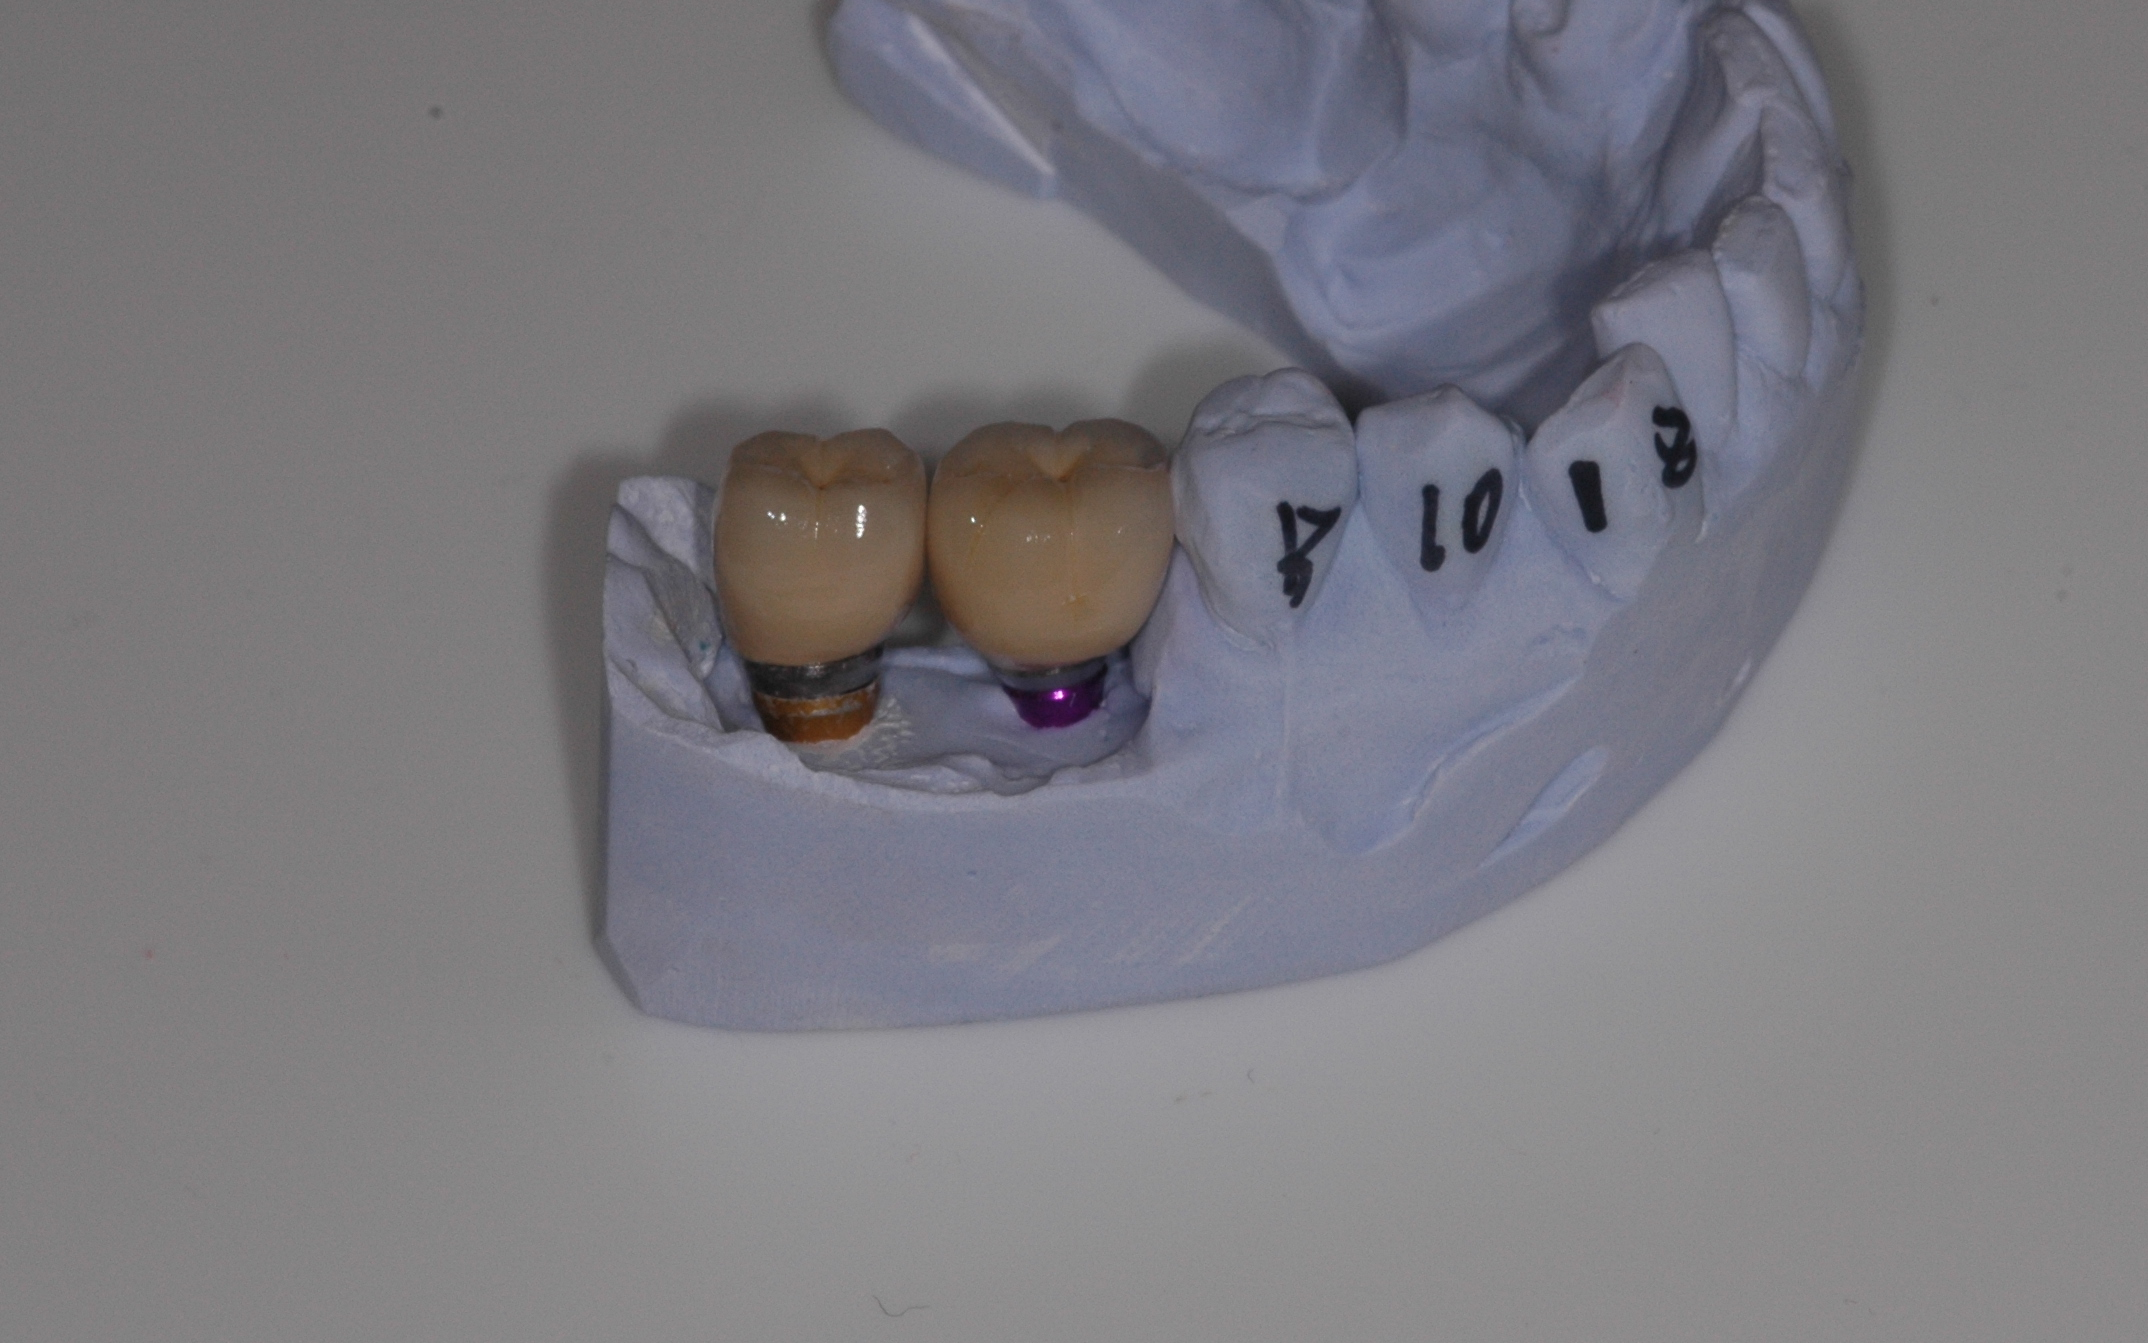 Cement Retained Dental Implant Crowns Dental Implants